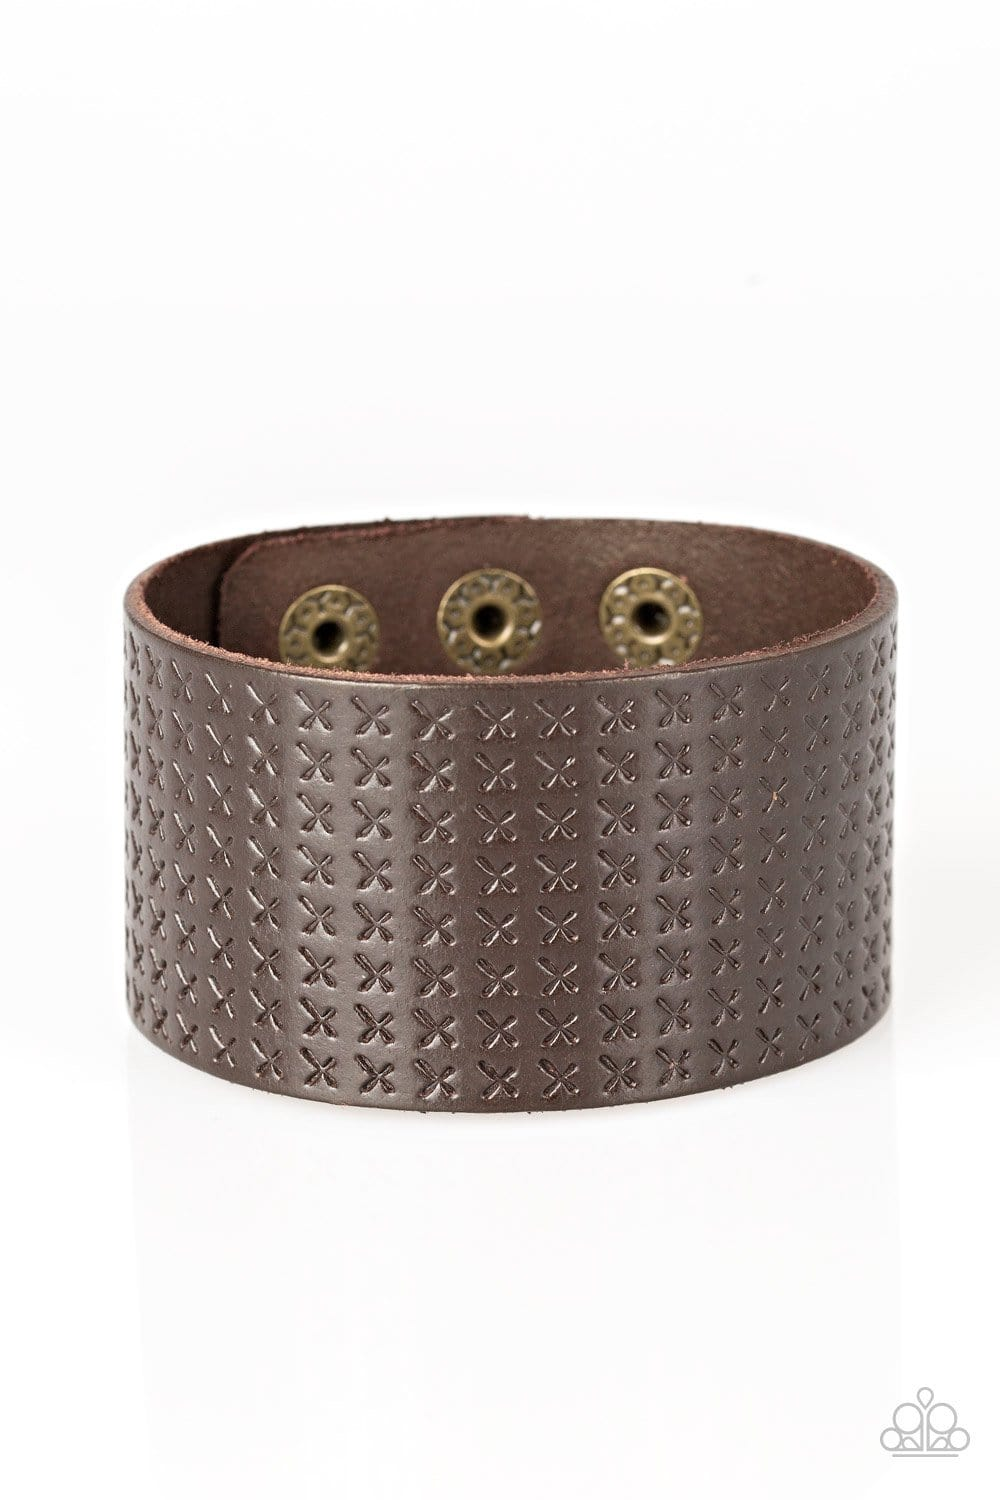 Paparazzi: Wild Wrangler - Brown Bracelet - Jewels N' Thingz Boutique